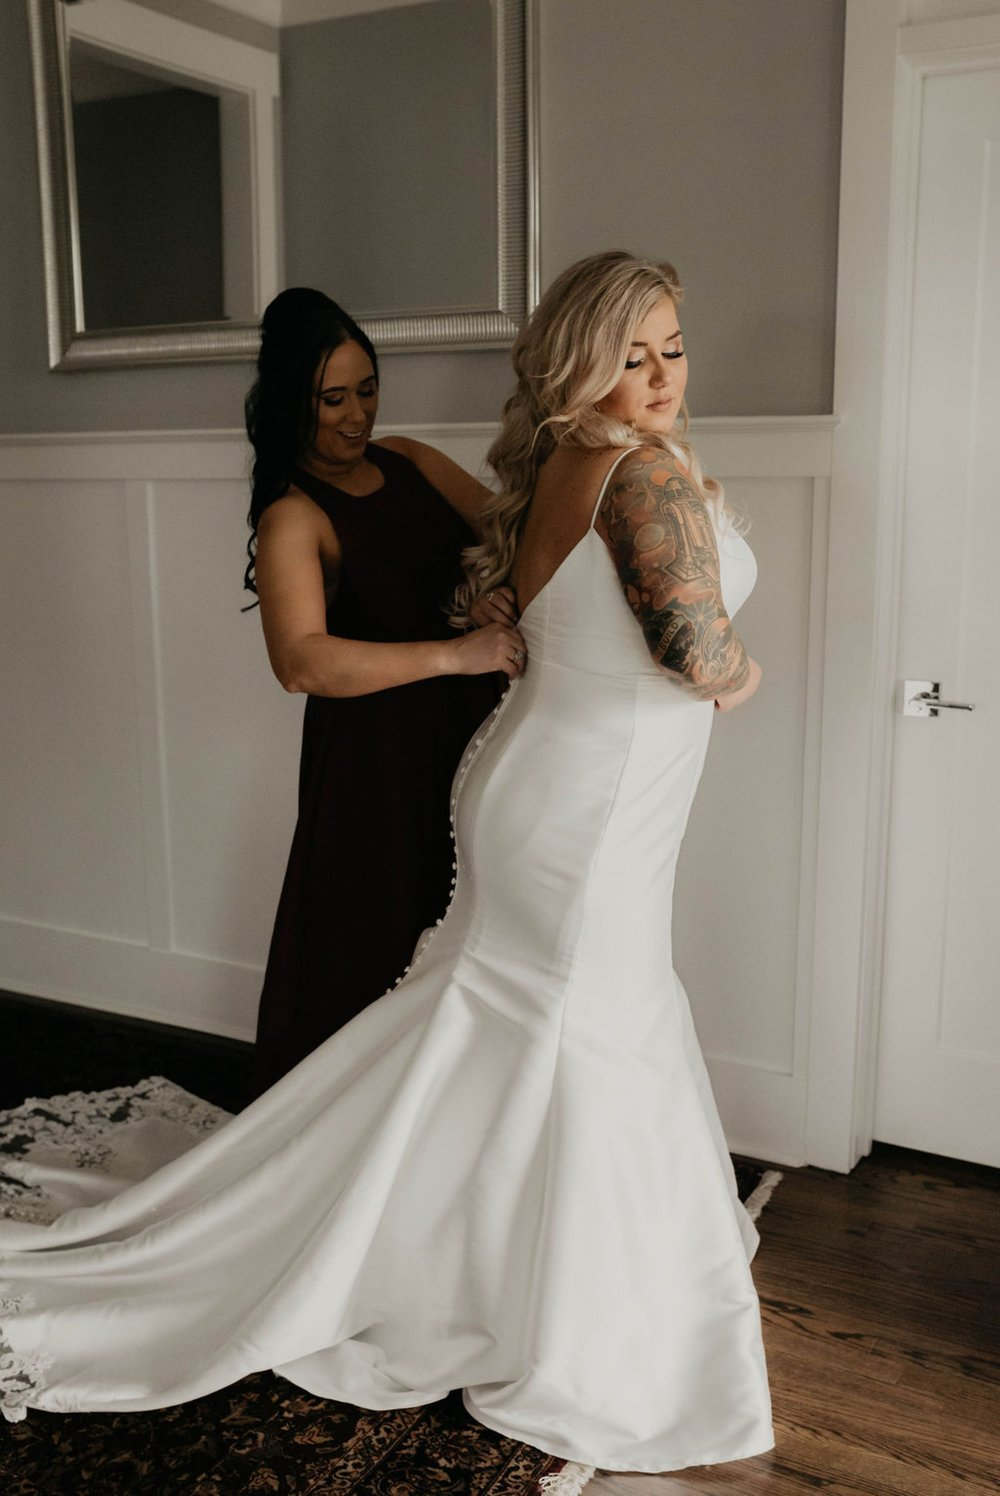 Maid of honor helping the bride getting into her mermaid allure wedding gown - - Matt Smarsh and Johanna Dye - suites by the black tux - Raleigh North Carolina Urban Edgy Downtown Wedding - suits by the black tux